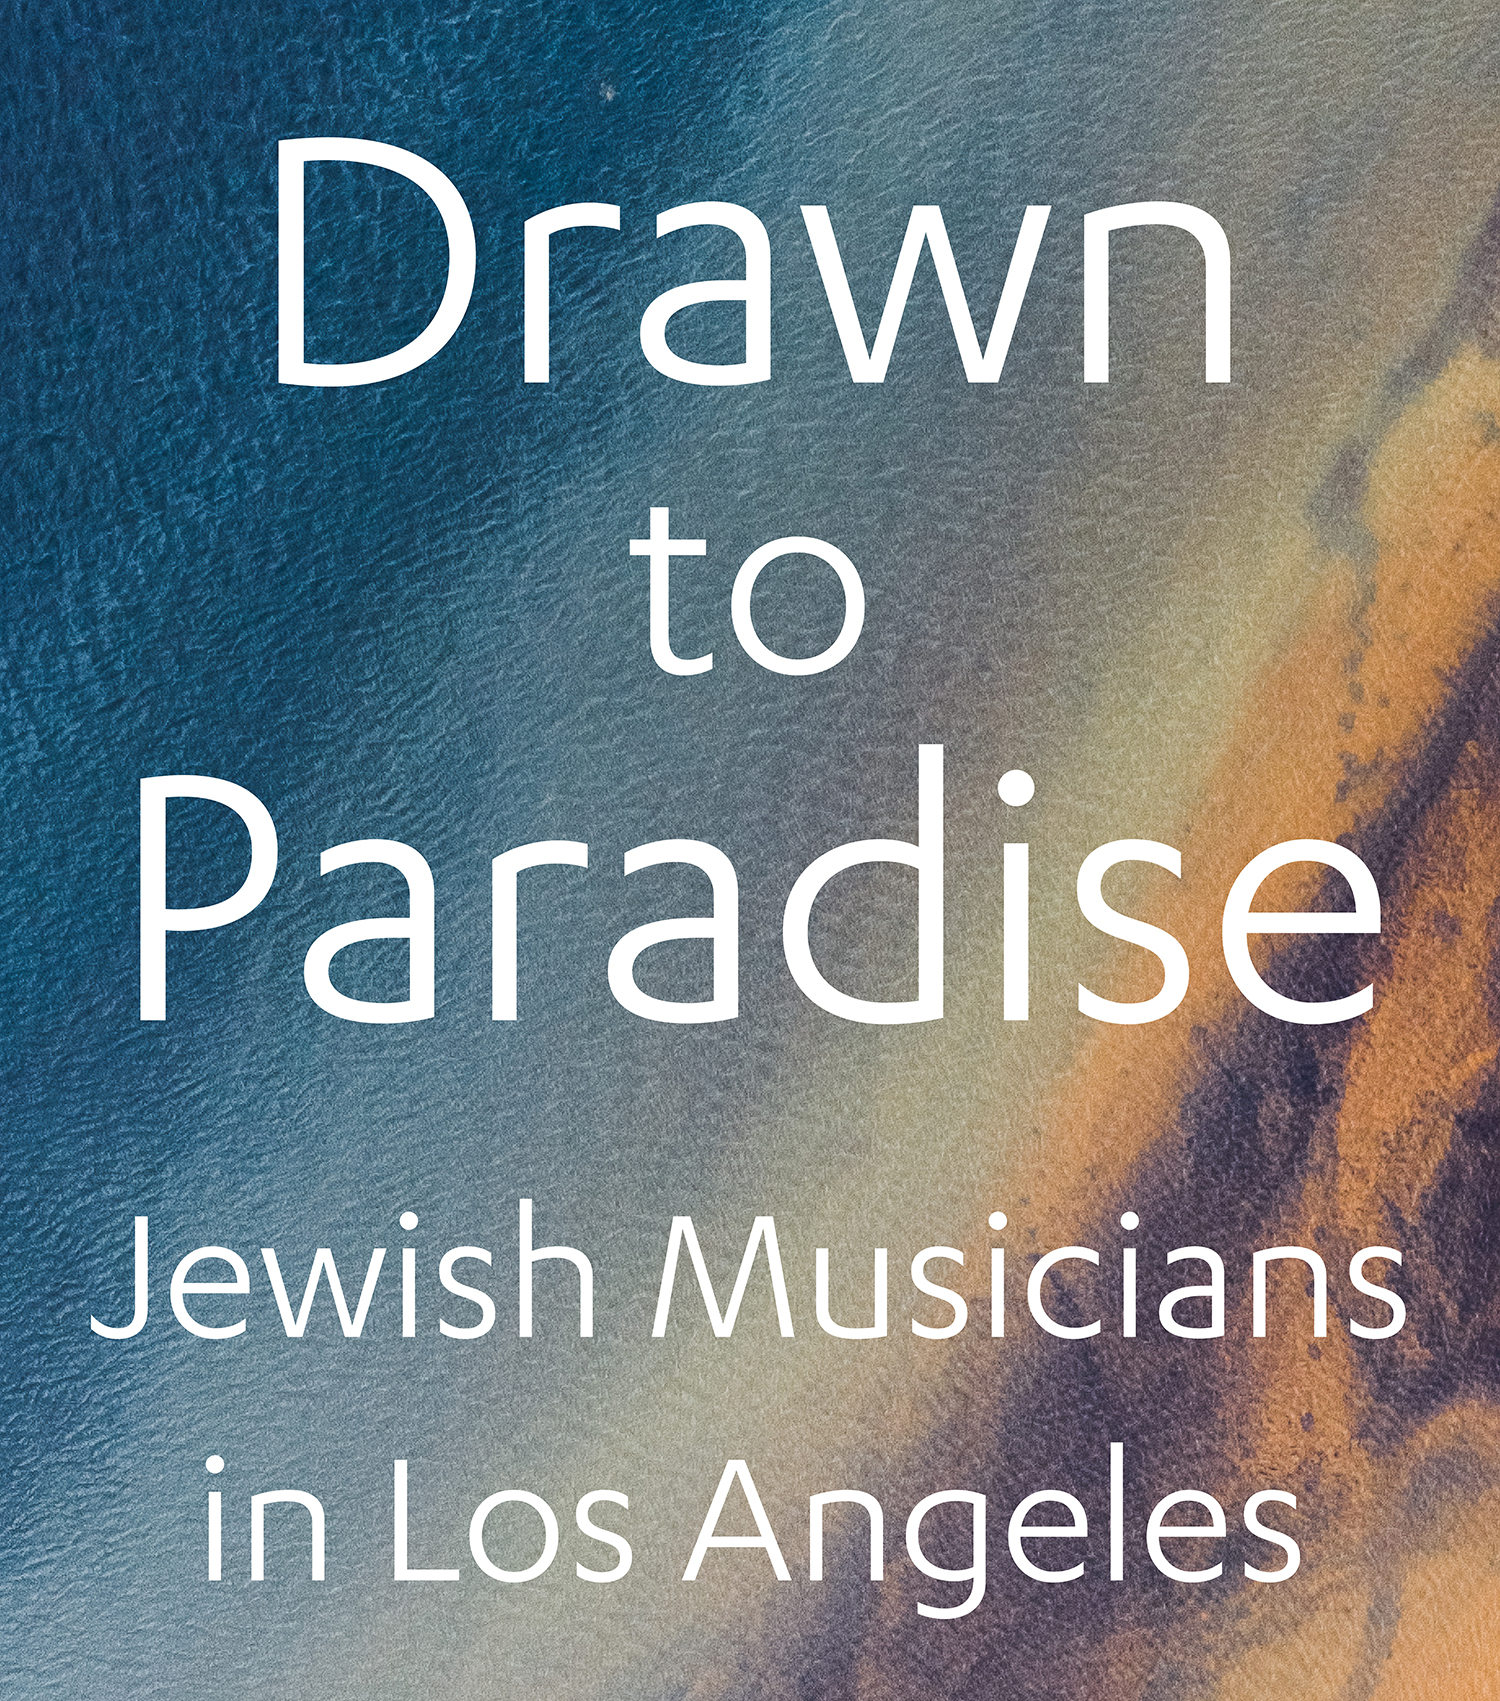 Drawn to Paradise - Jewish Musicians in Los Angeles